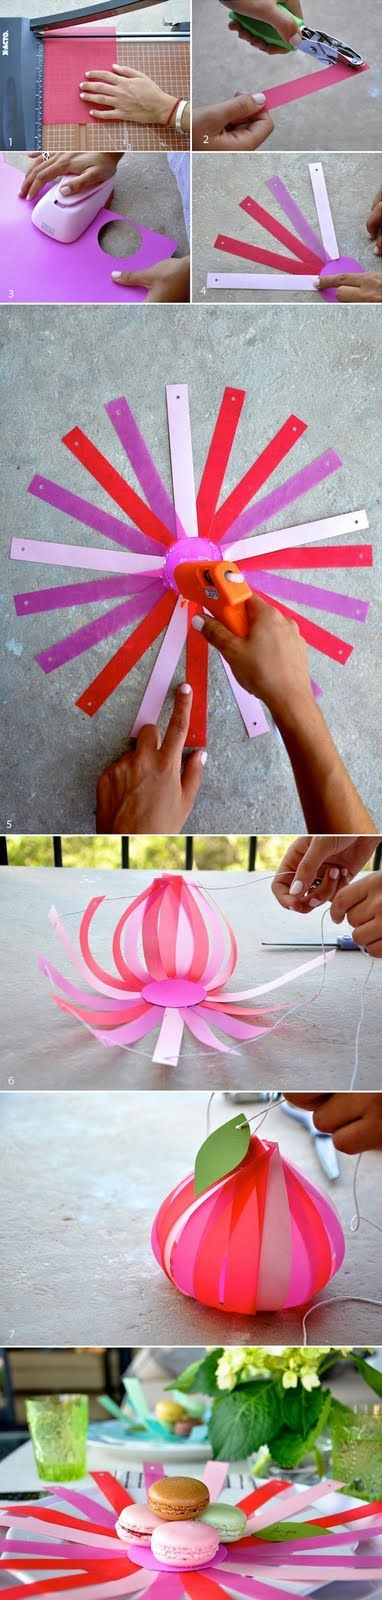 cool gift-wrapping idea for treats!!